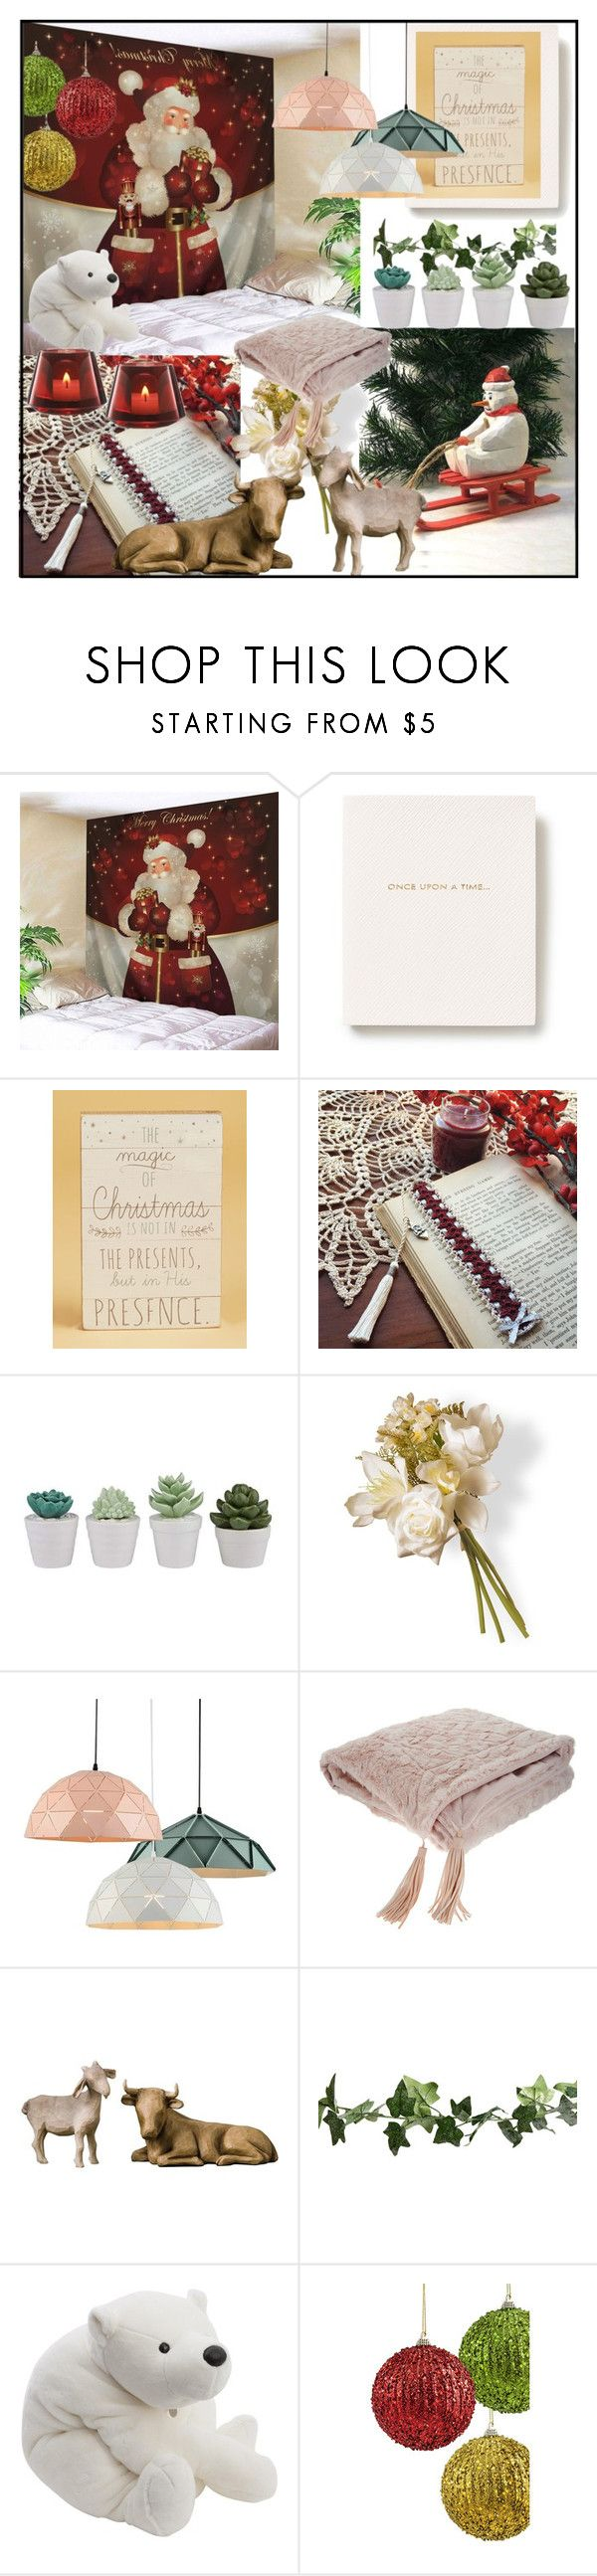 """""""Home Decor Christmas Gifts"""" by din-sesantadue ❤ liked on Polyvore featuring interior, interiors, interior design, home, home decor, interior decorating, Smythson, National Tree Company, Willow Tree and Christian Dior"""